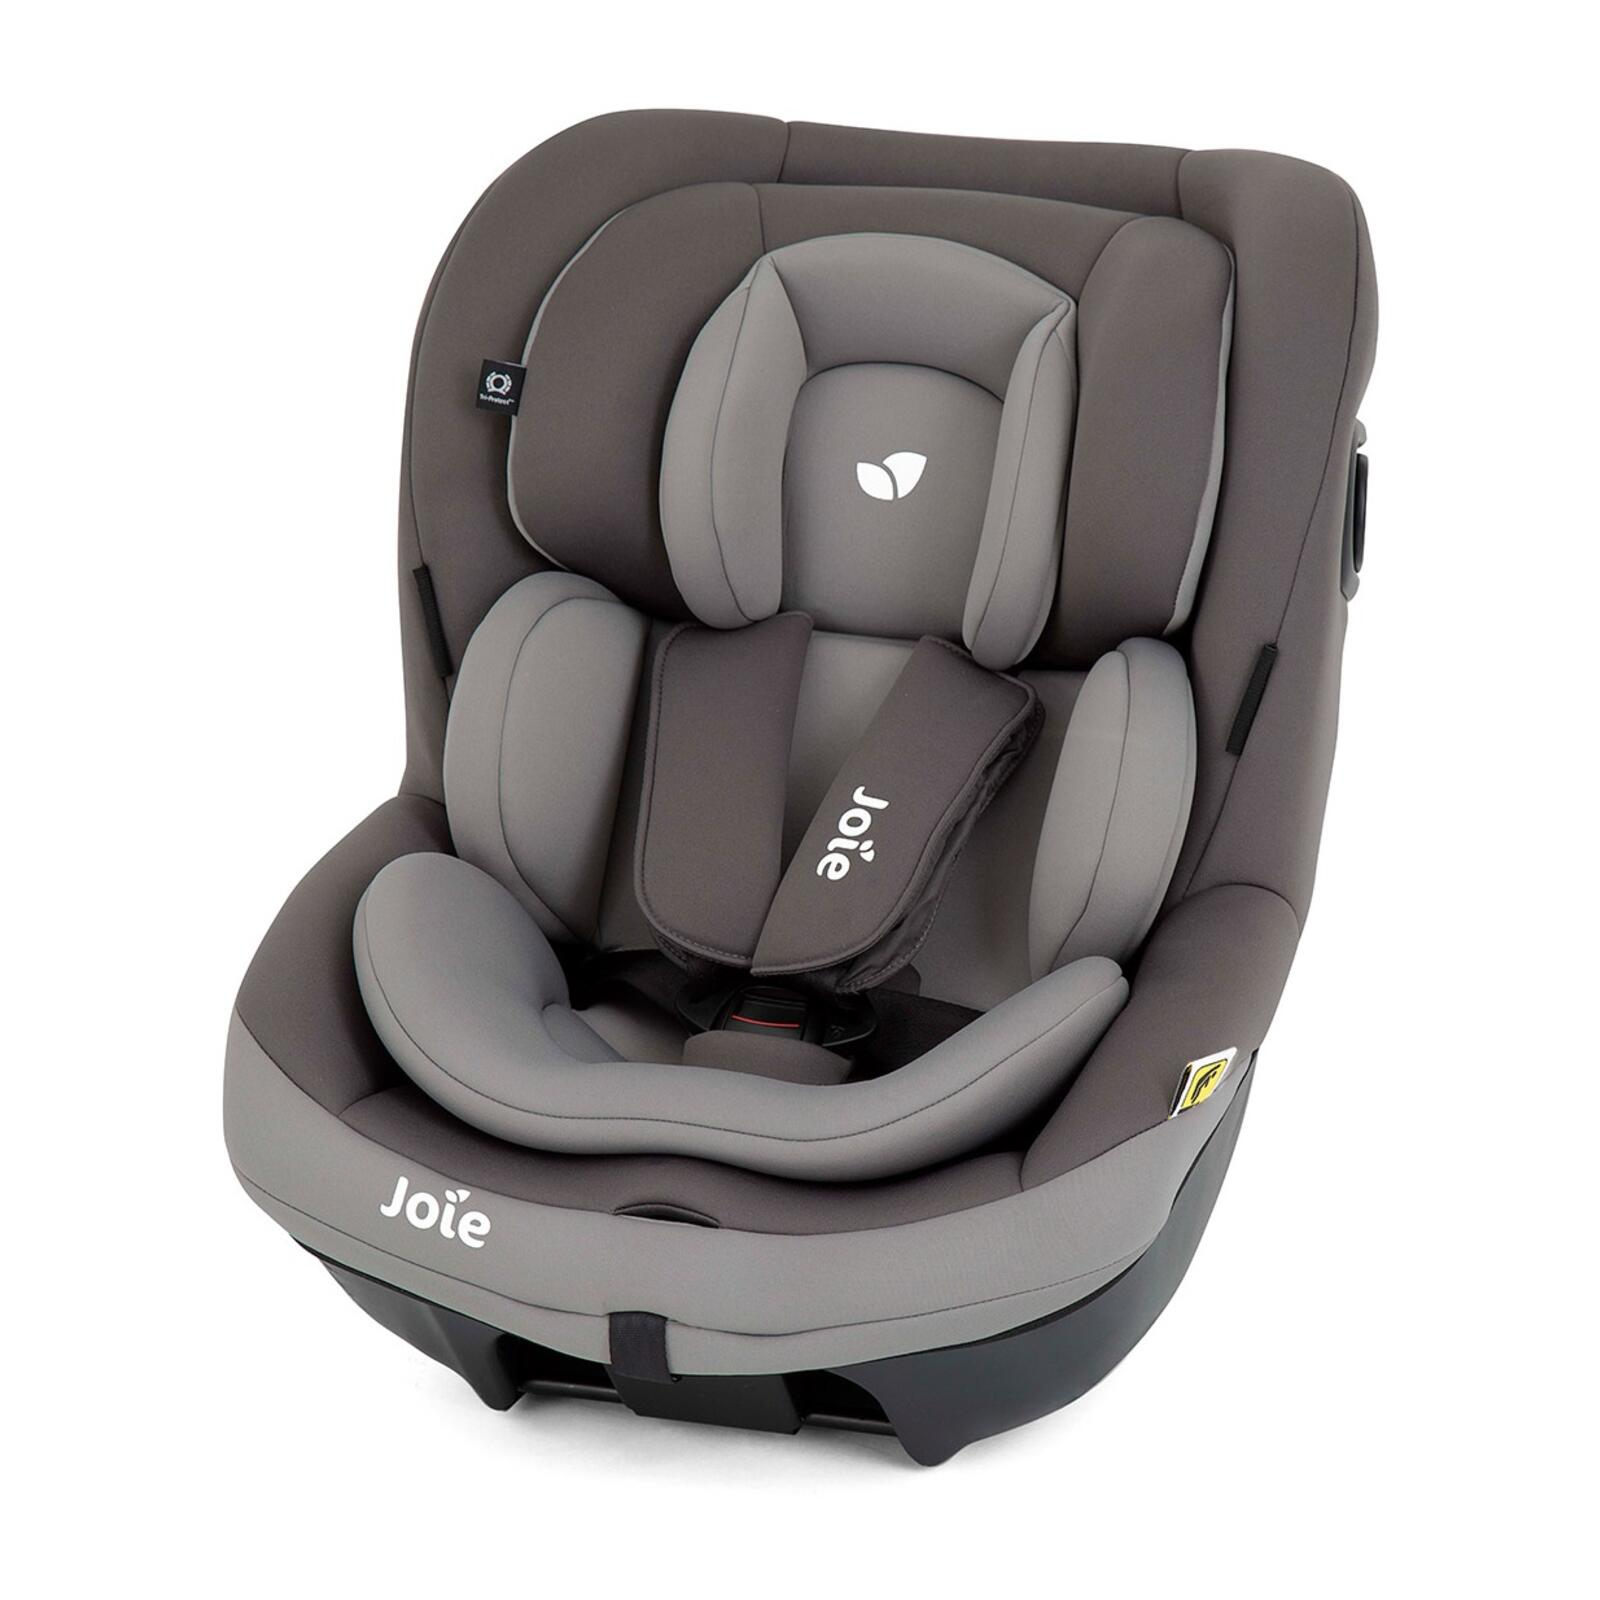 Joie Gemm & Isofix Base Bundle Joie Chrome Dlx I Venture I Snug Travel System With